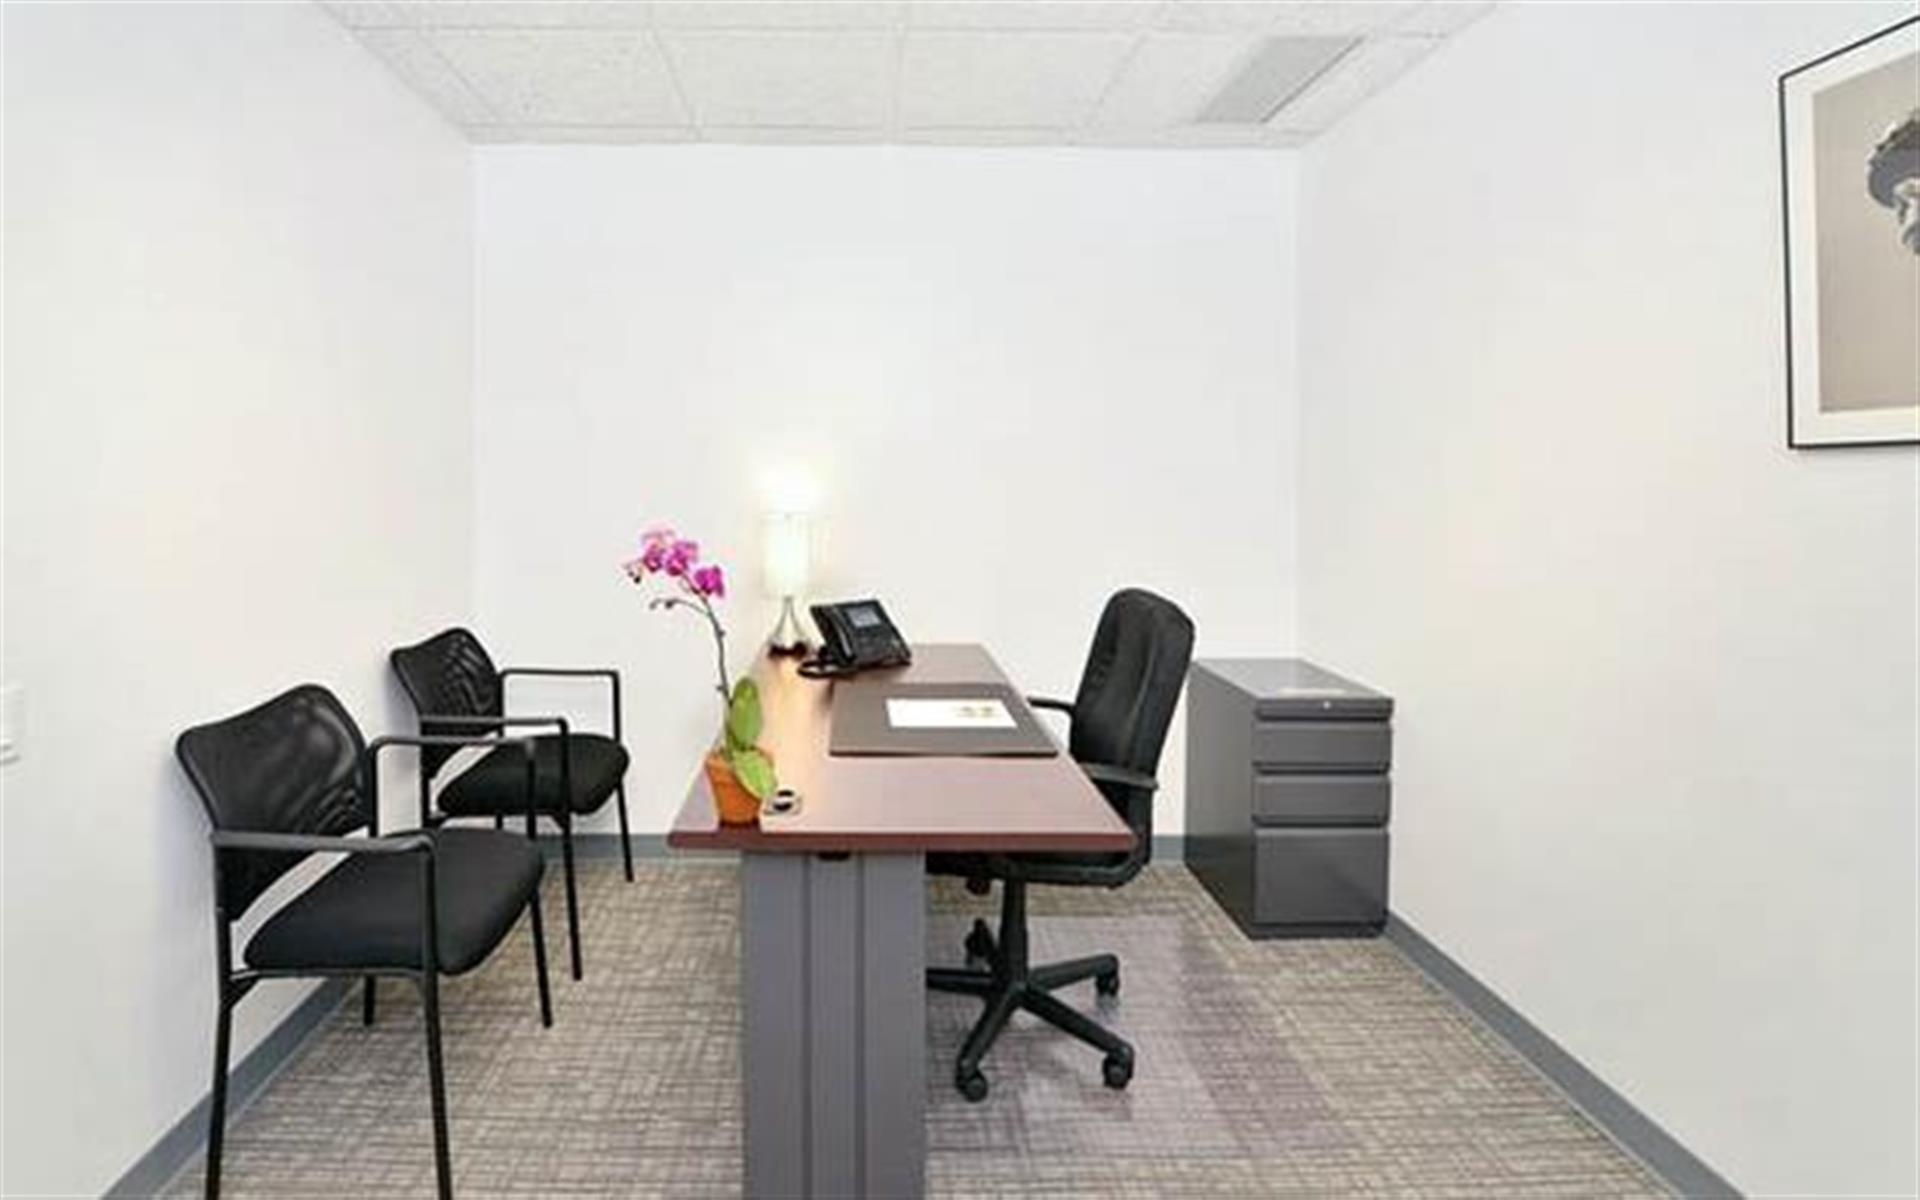 NYC Office Suites 733 - Private & Secure Office (2 Desks)